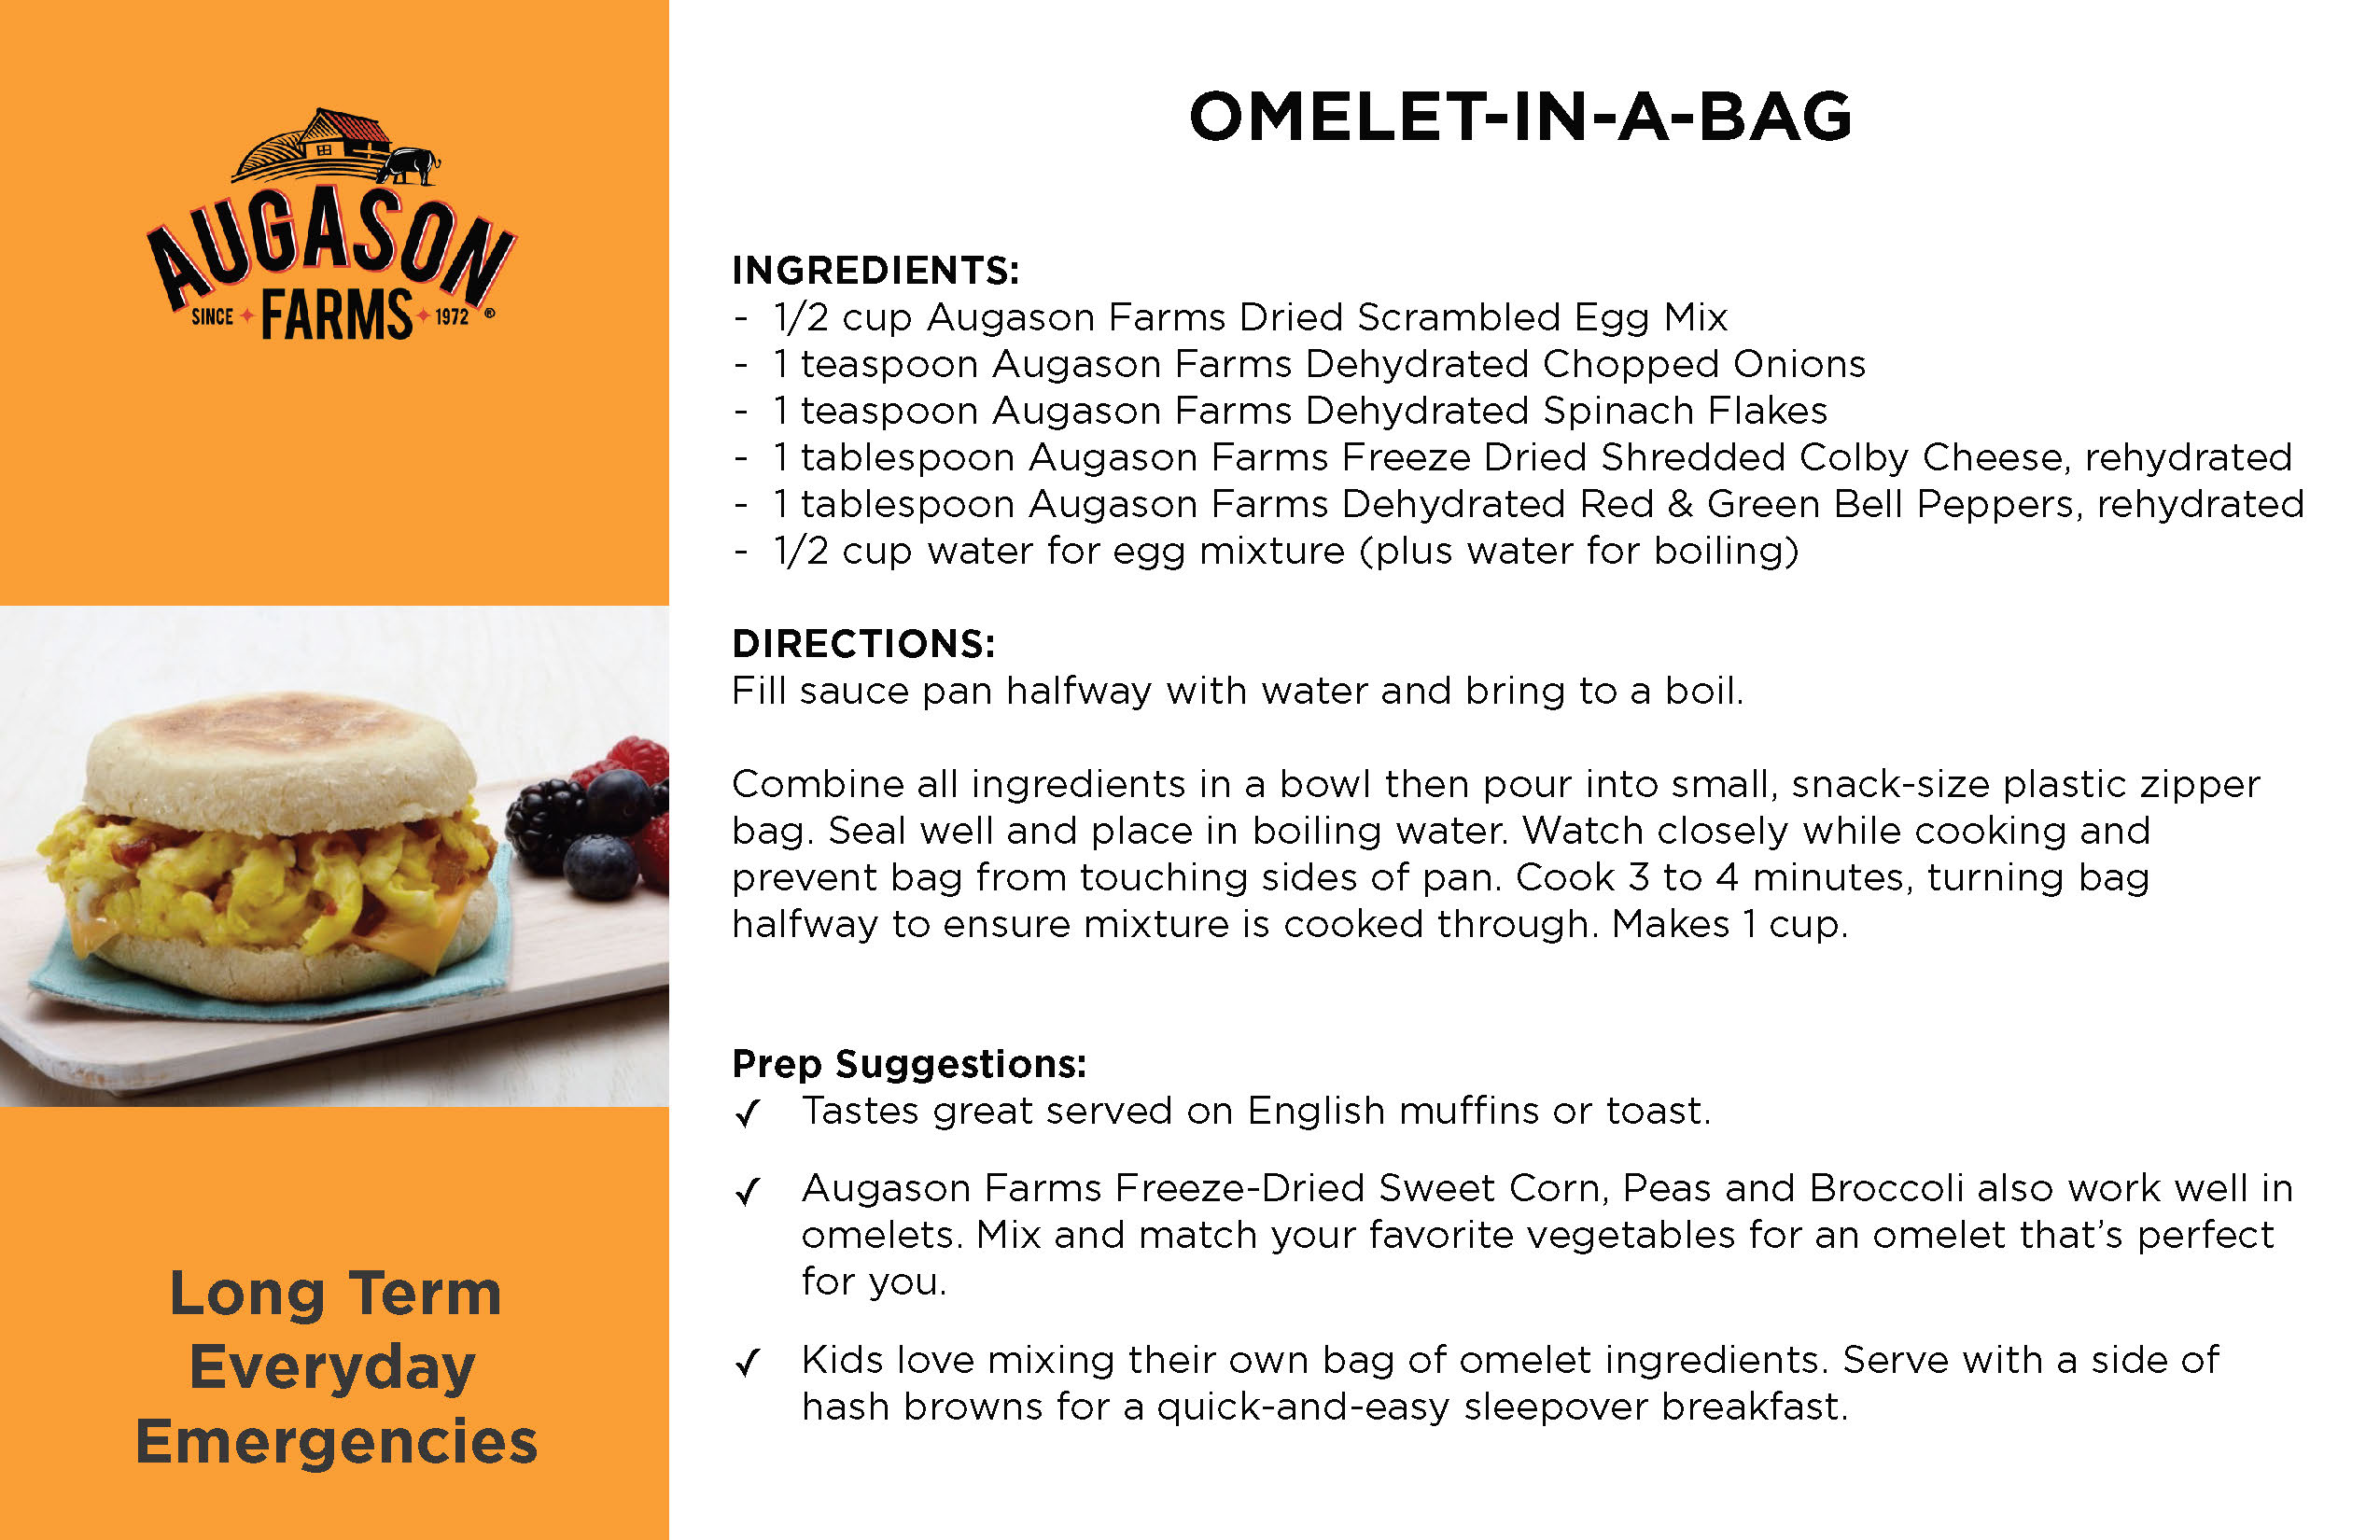 Omelette-in-a-Bag Recipe